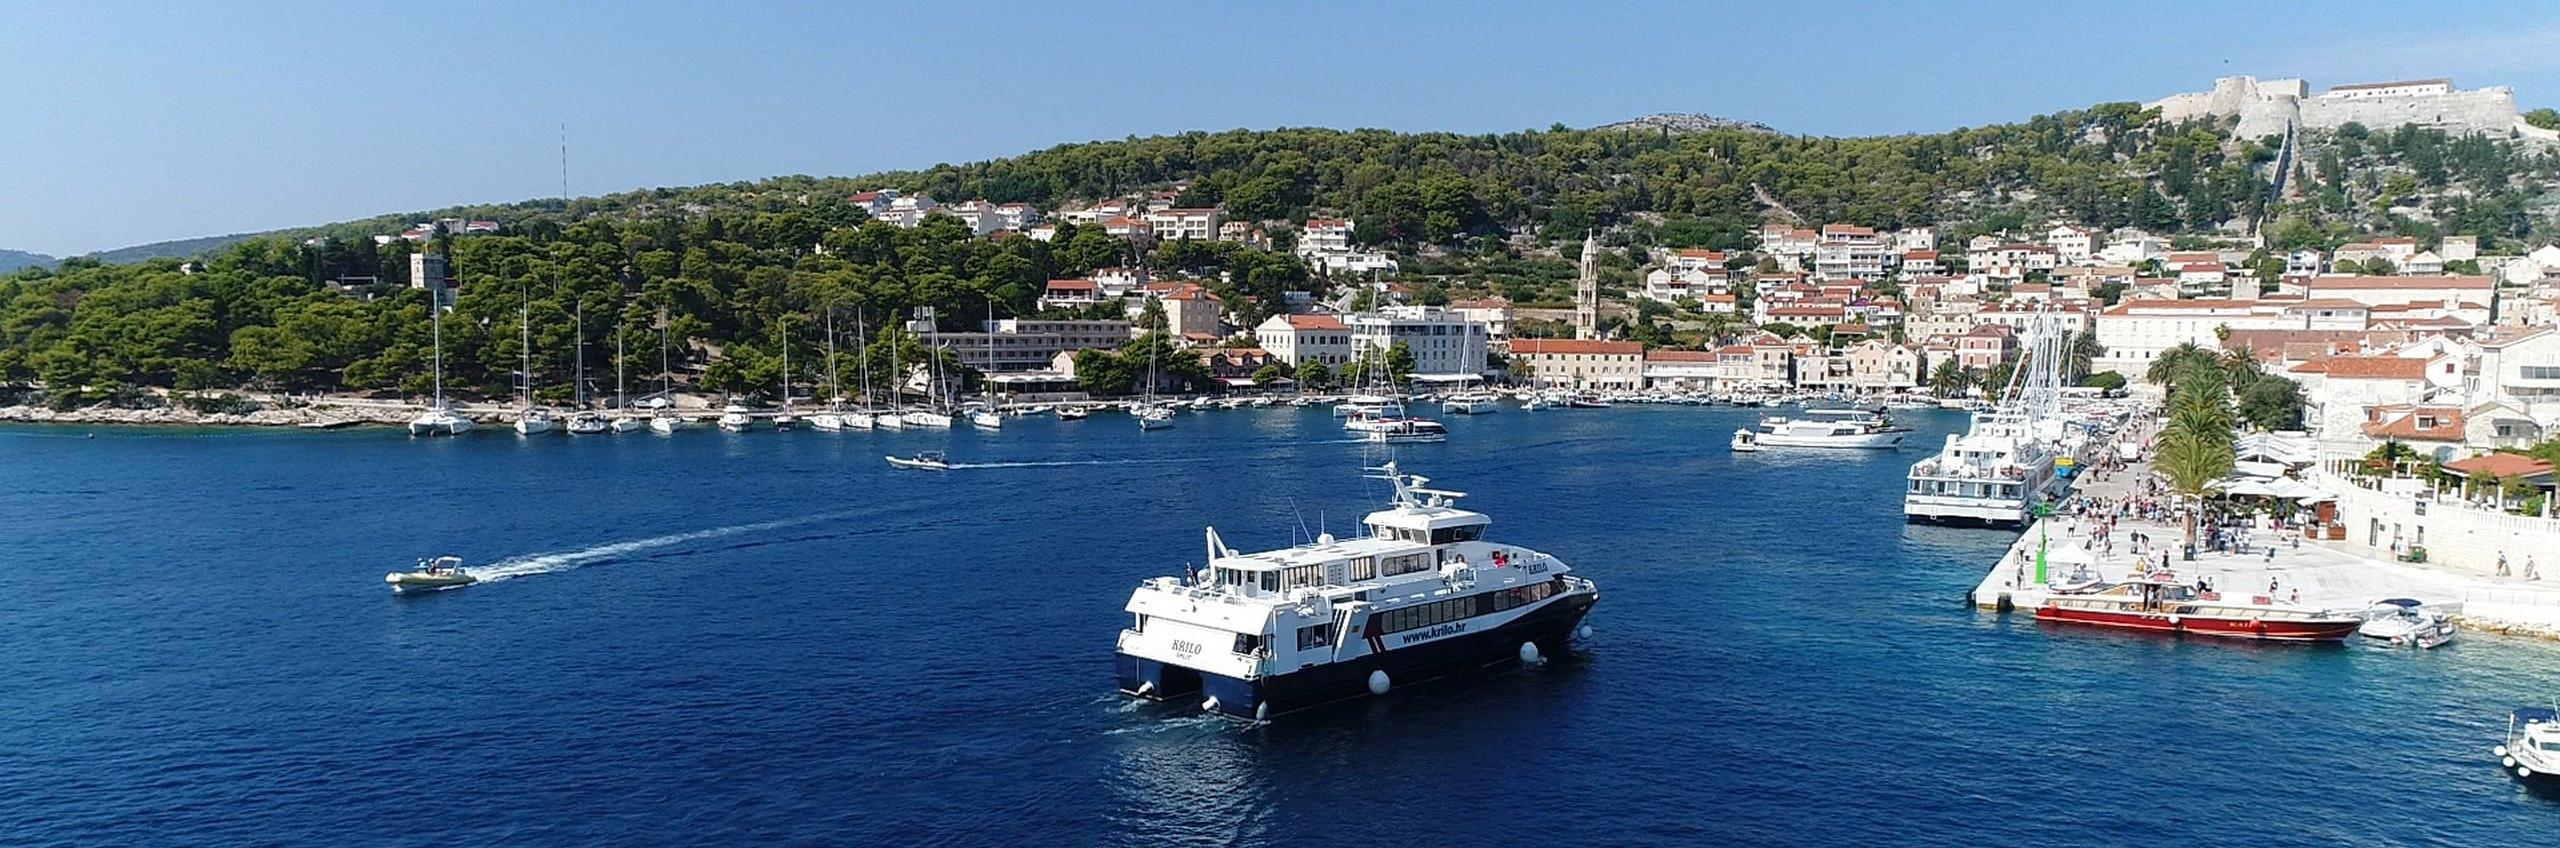 Catamaran Split Hvar Split How To Get To Hvar